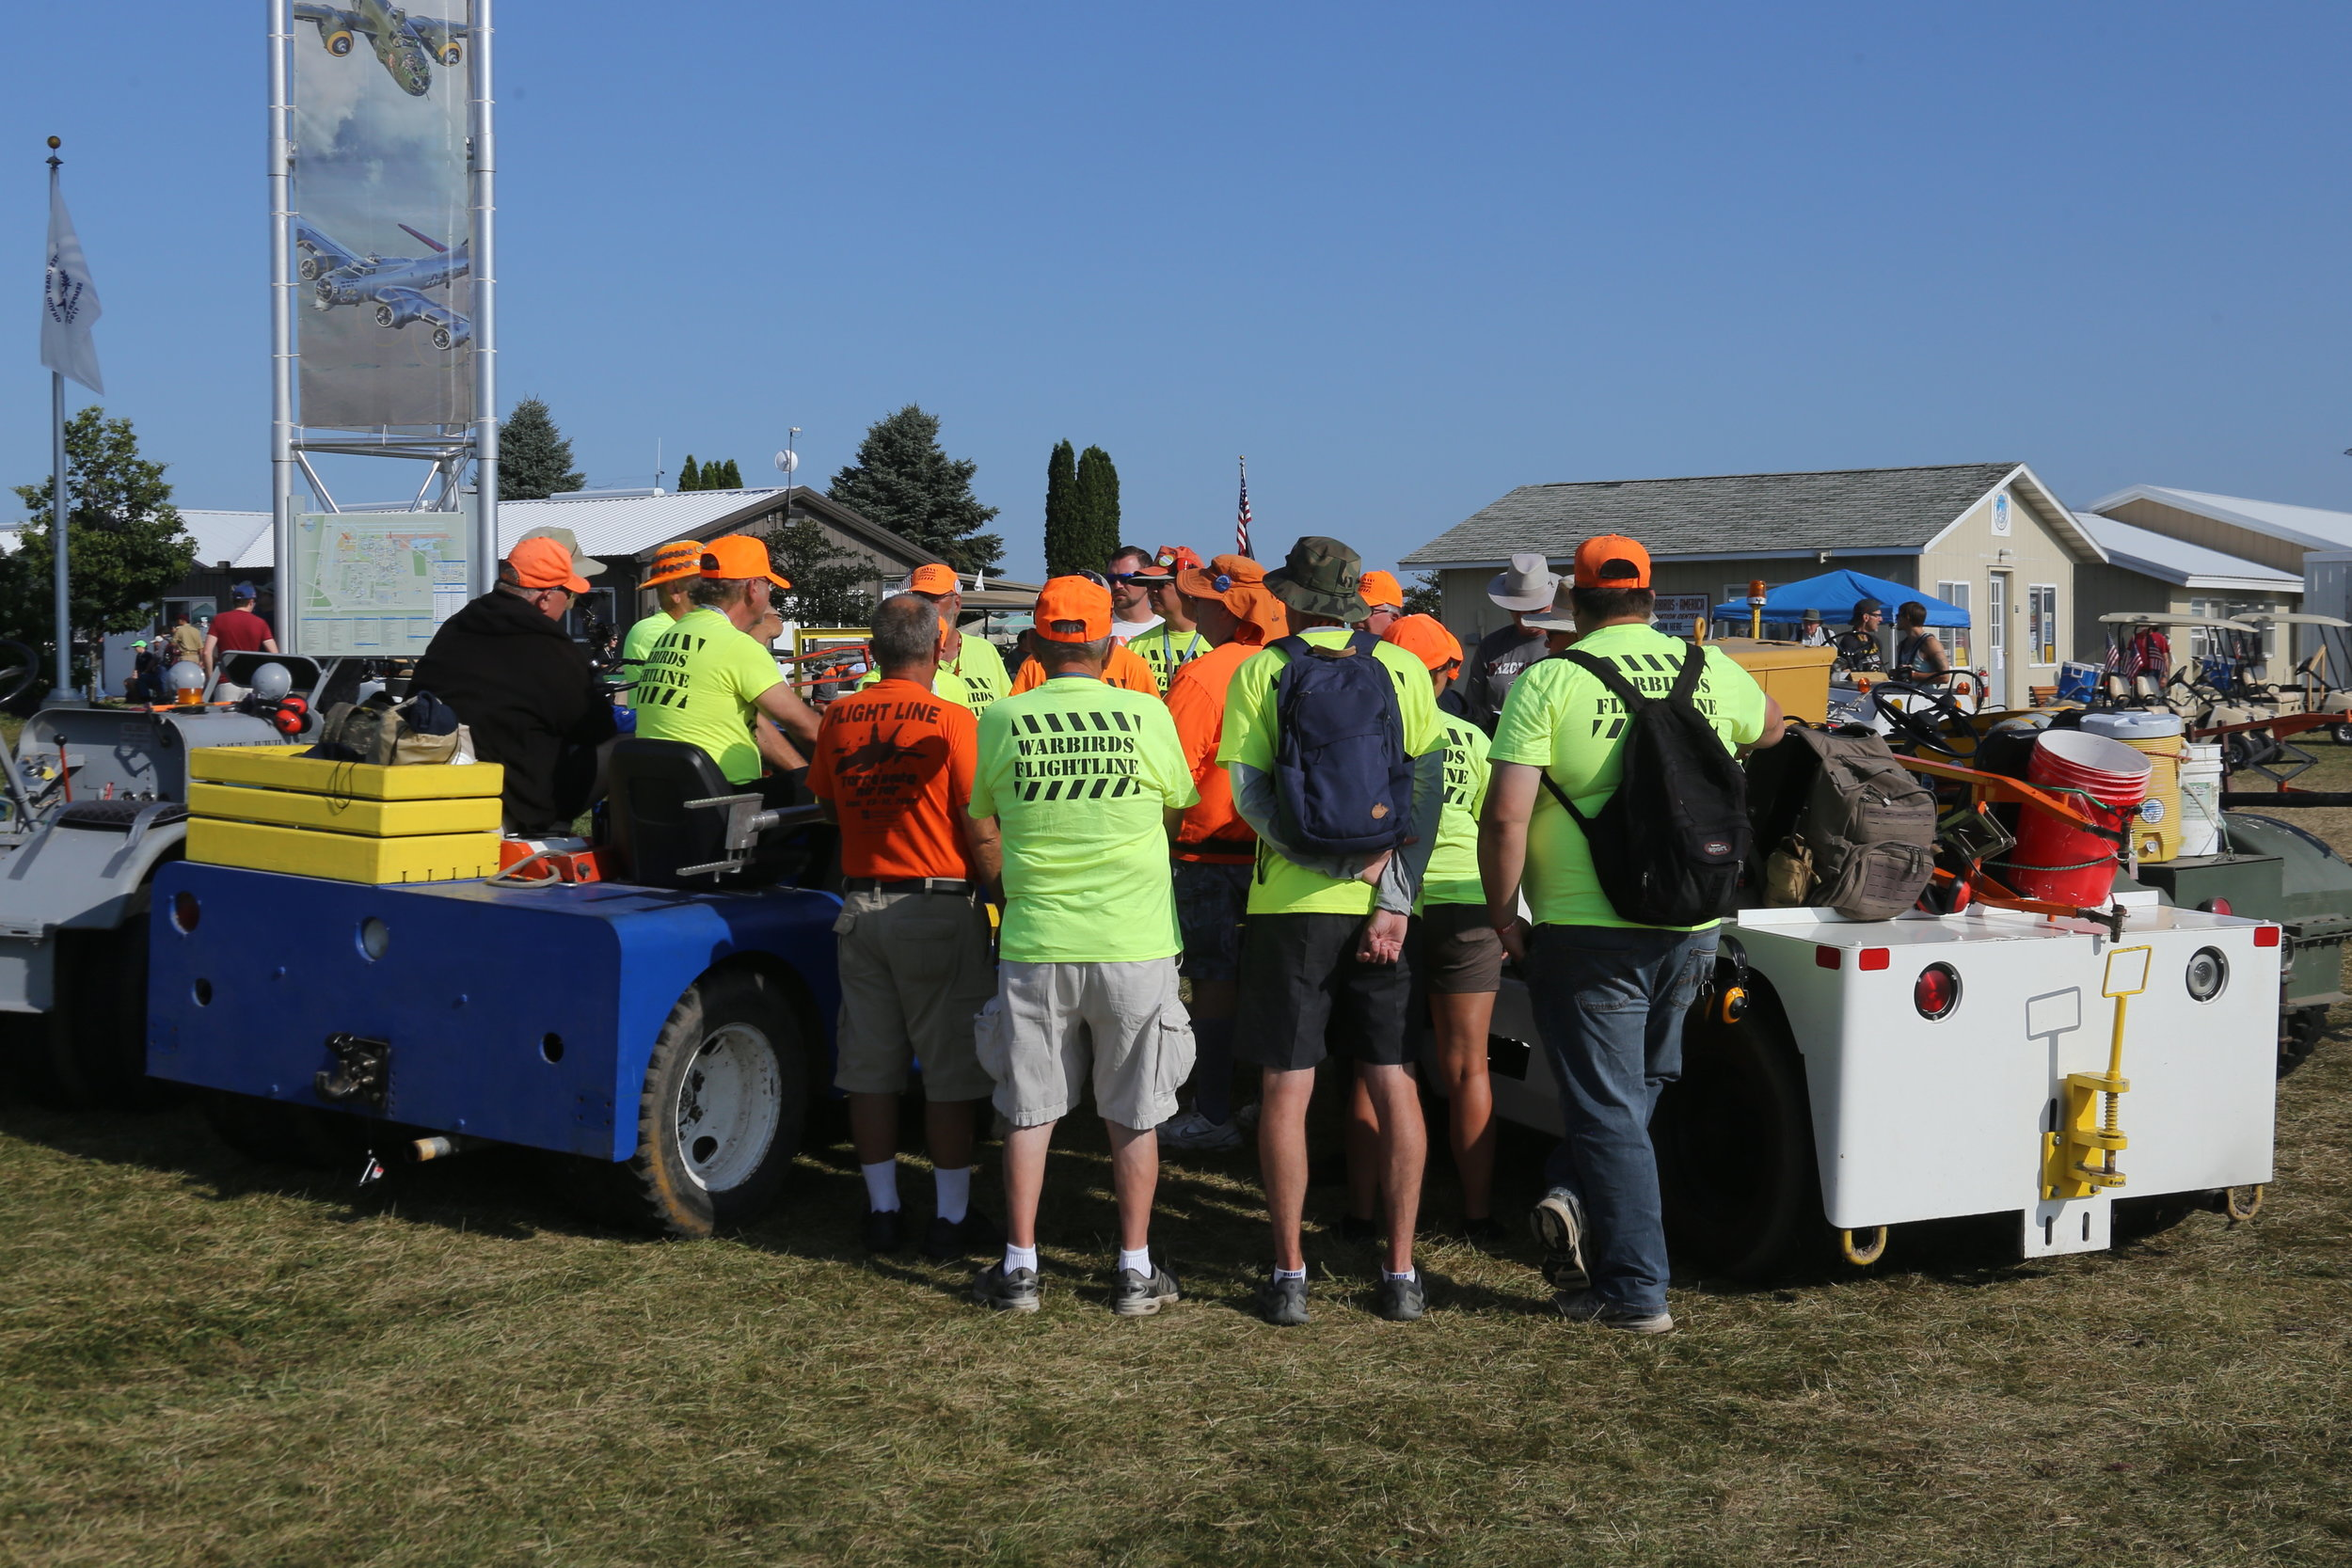 Team briefing for the Warbirds flightline crew taken at Oshkosh 28th July 2018 by John Wood